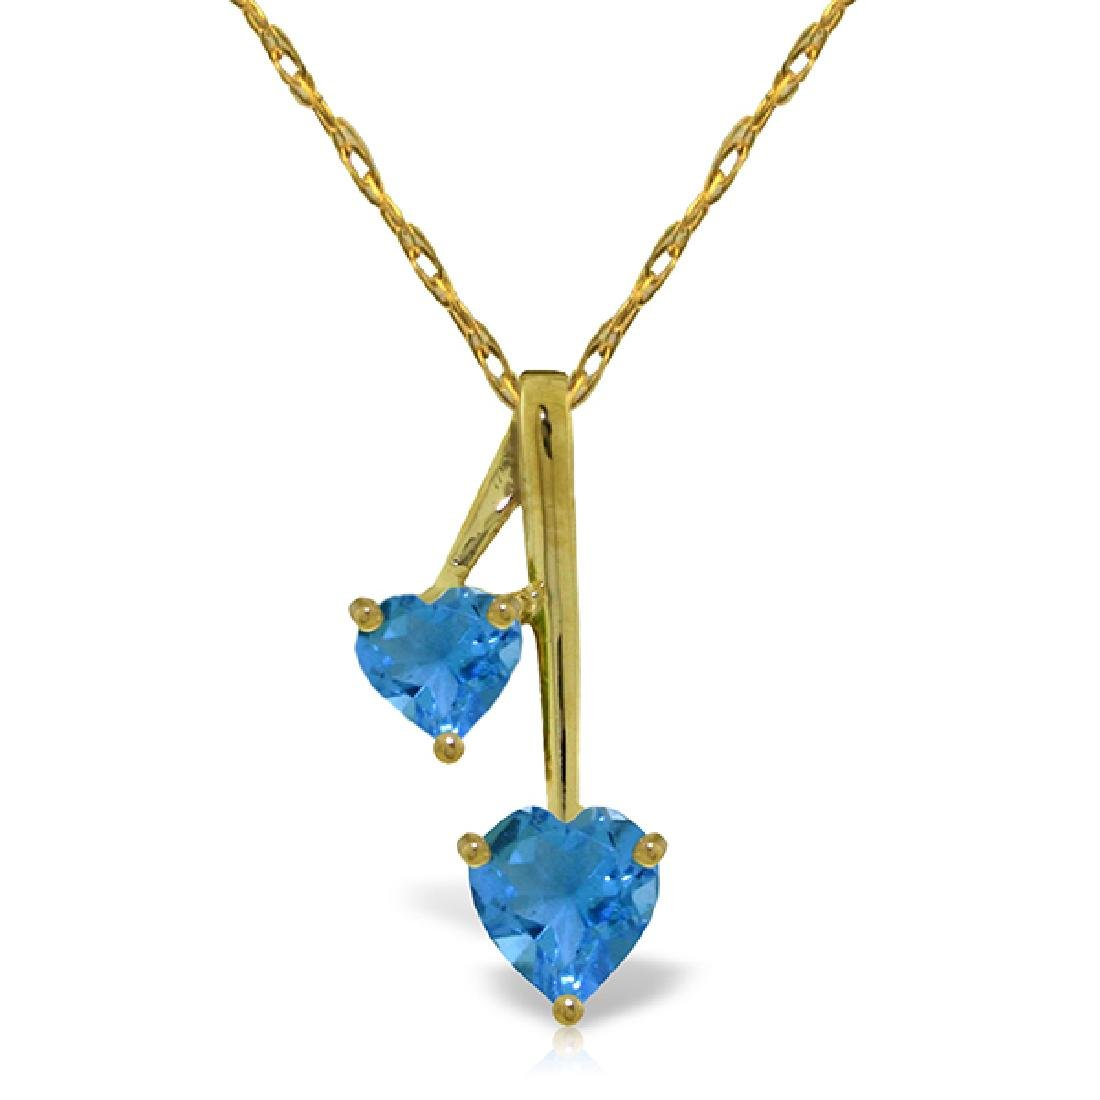 Genuine 1.40 ctw Blue Topaz Necklace Jewelry 14KT